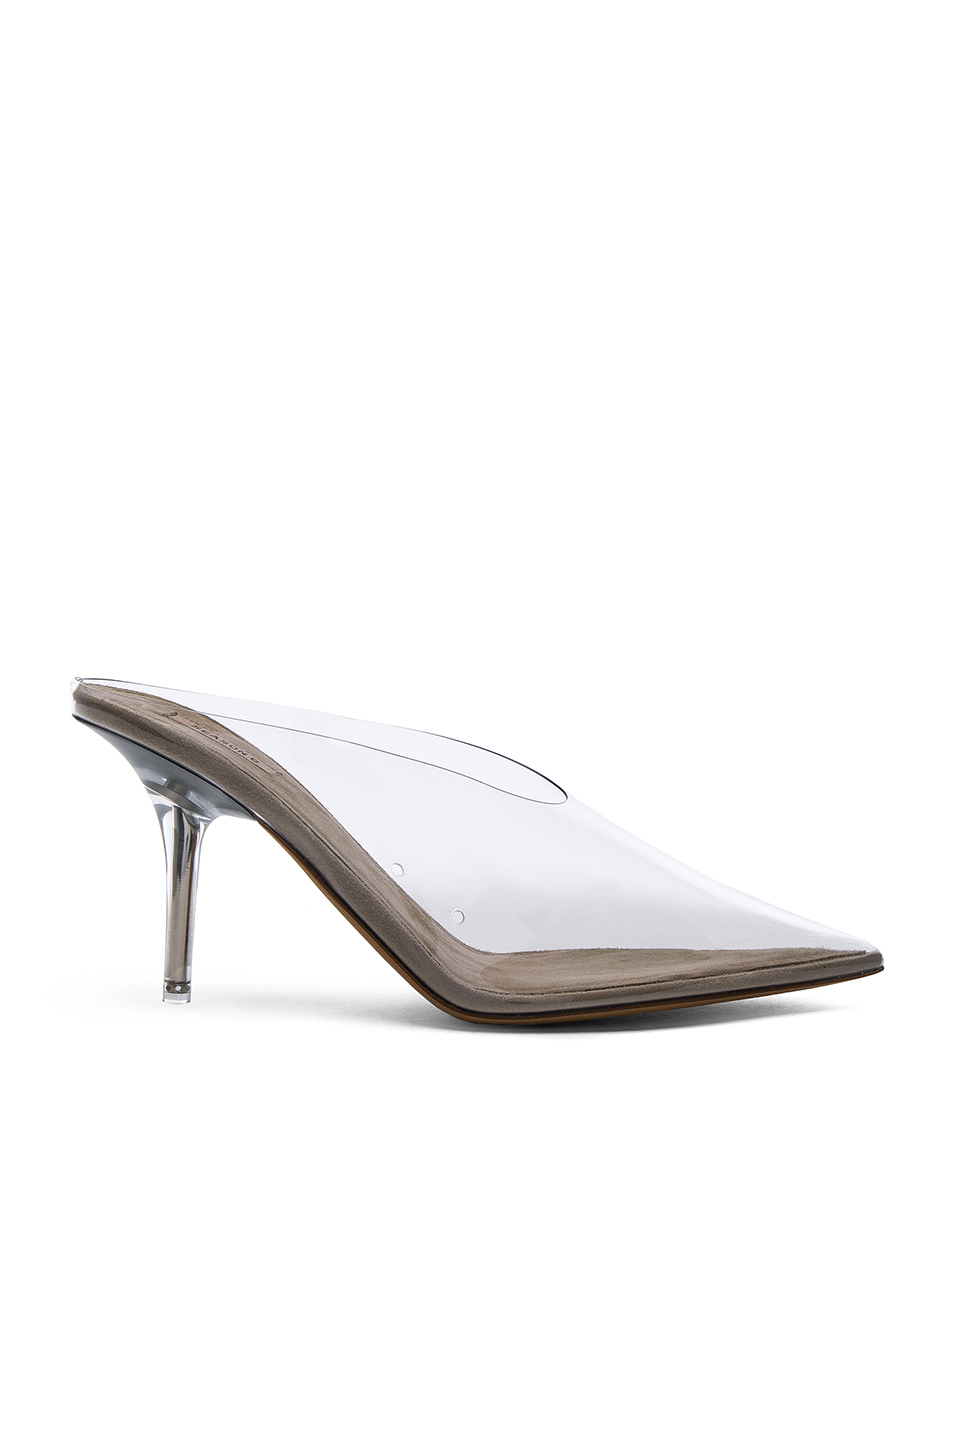 Mule PVC Clear by Yeezy, available on fwrd.com for $518 Kim Kardashian Shoes Exact Product